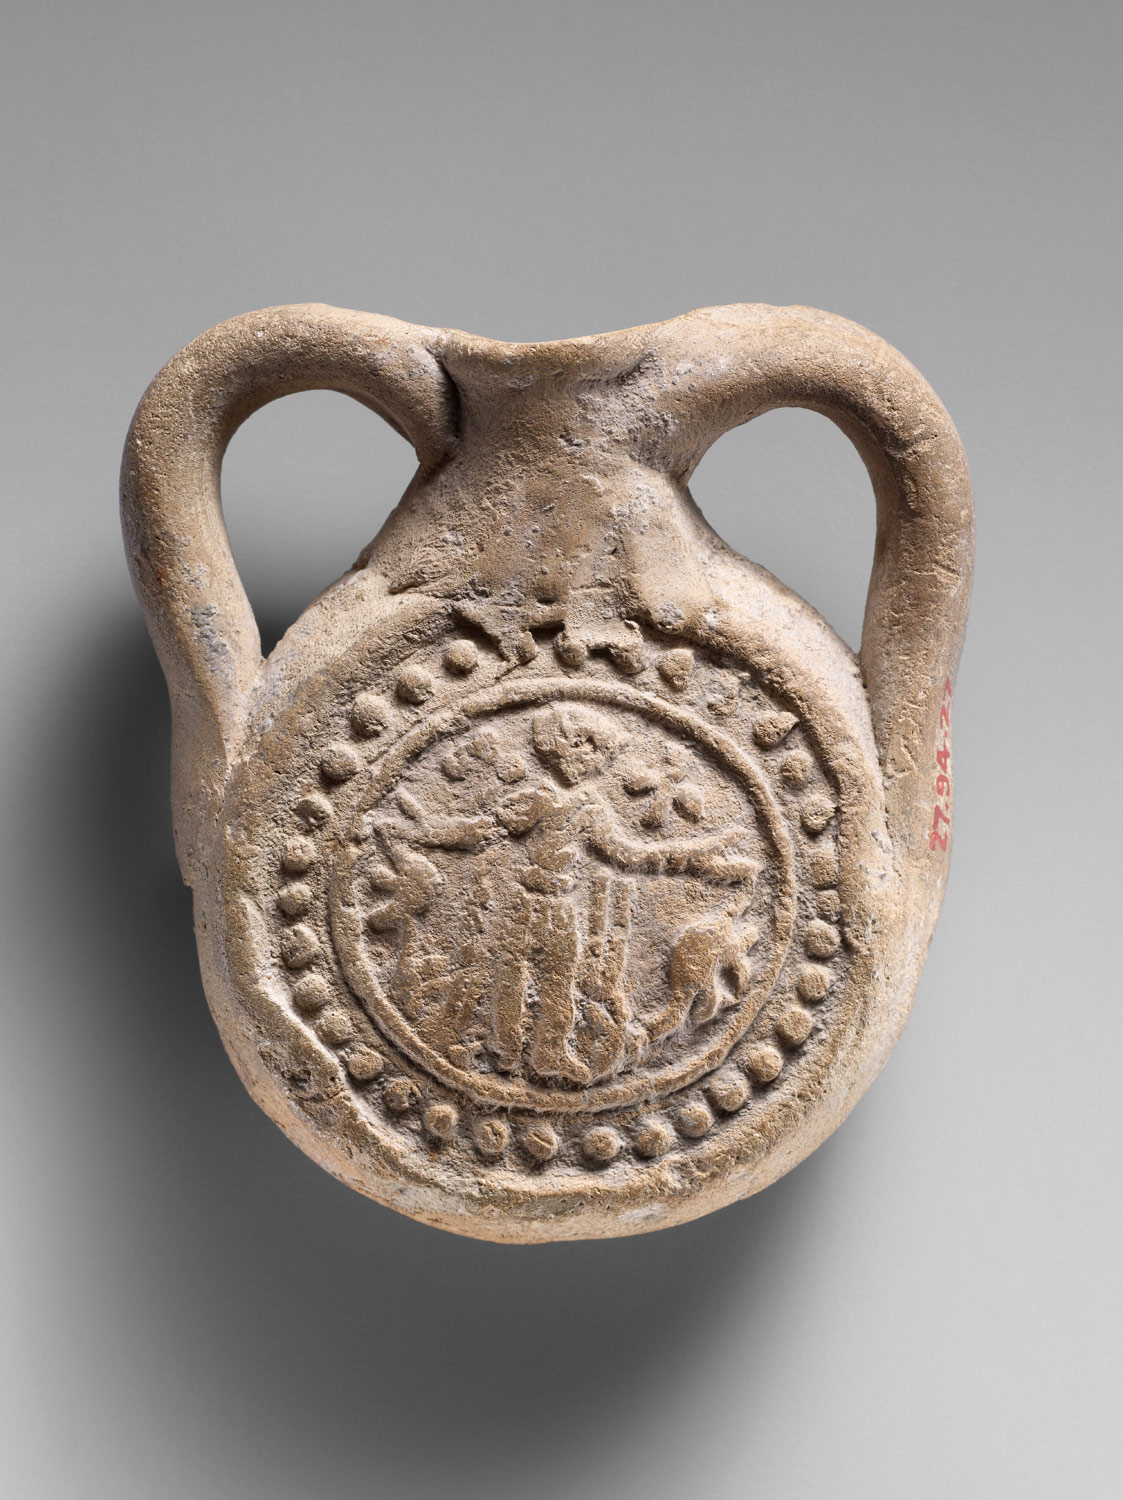 6th- to 8th-century pilgrim flask of St. Menas (Egypt) https://www.metmuseum.org/art/collection/search/447995